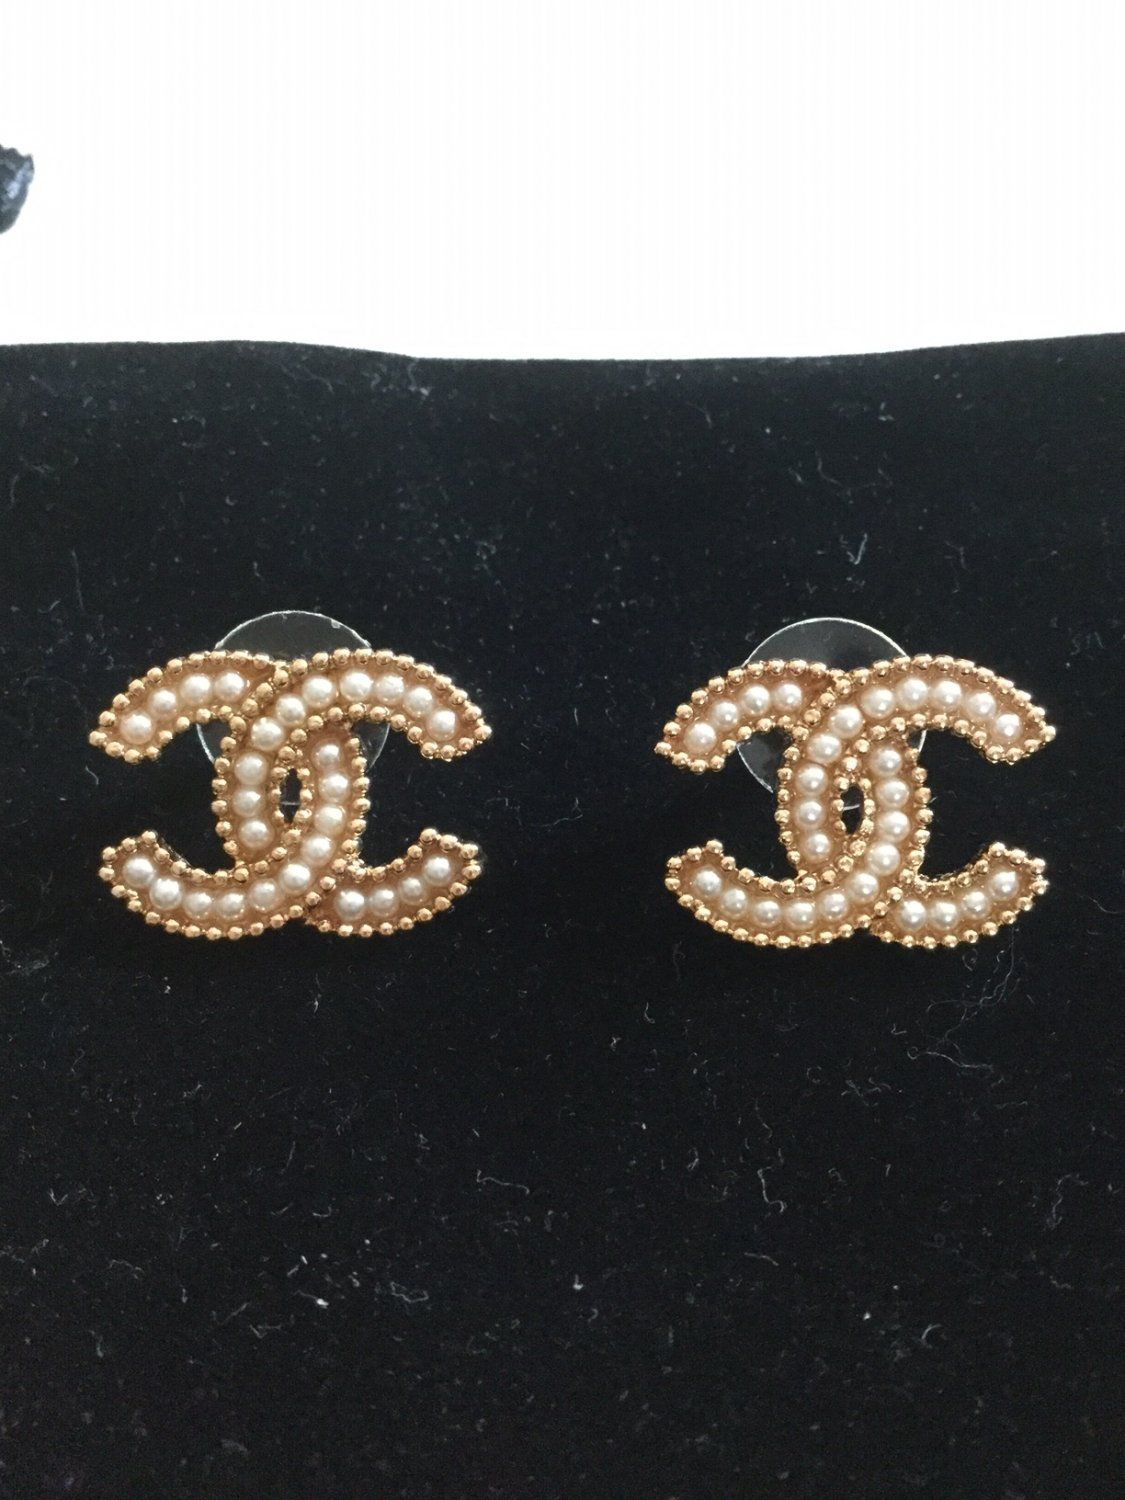 2d4e3e0a1 CHANEL+Seed+Pearl+CC+Stud+Earrings+Gold+Metal+Medium+Size+Hallmark+NIB!